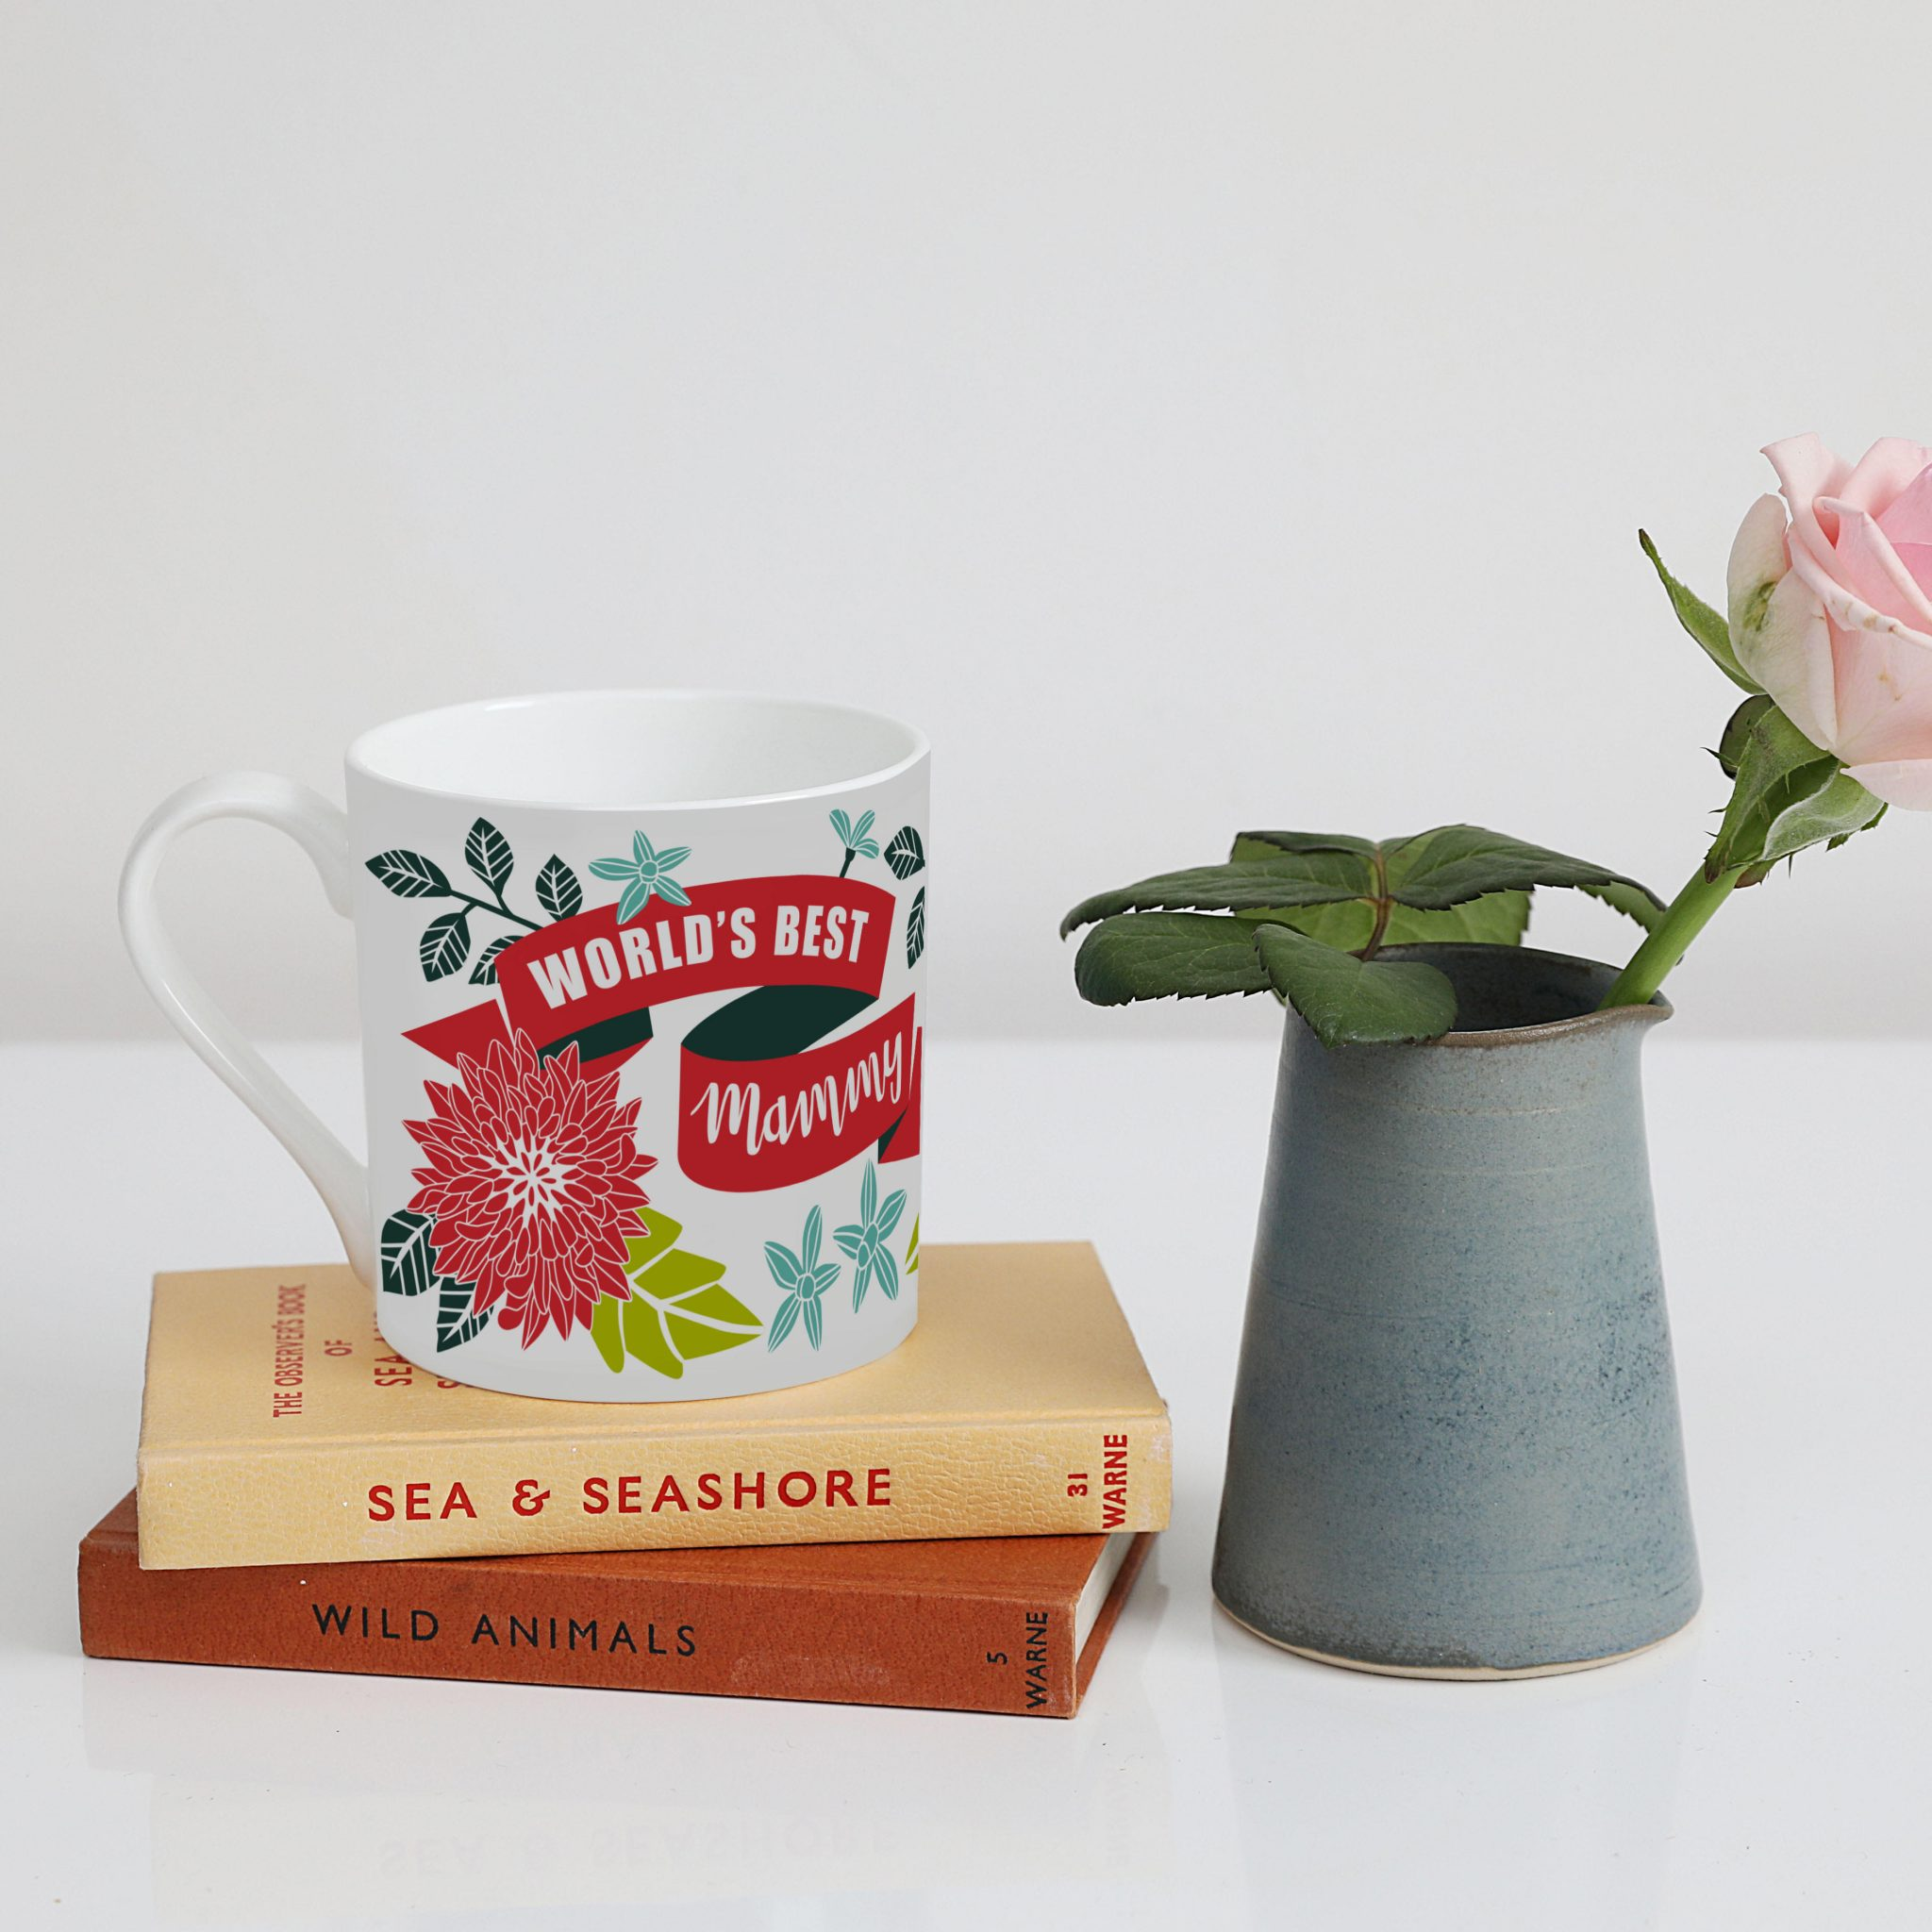 Win a World's Best Mammy China Mug by For the Love of the North - Midlands traveller